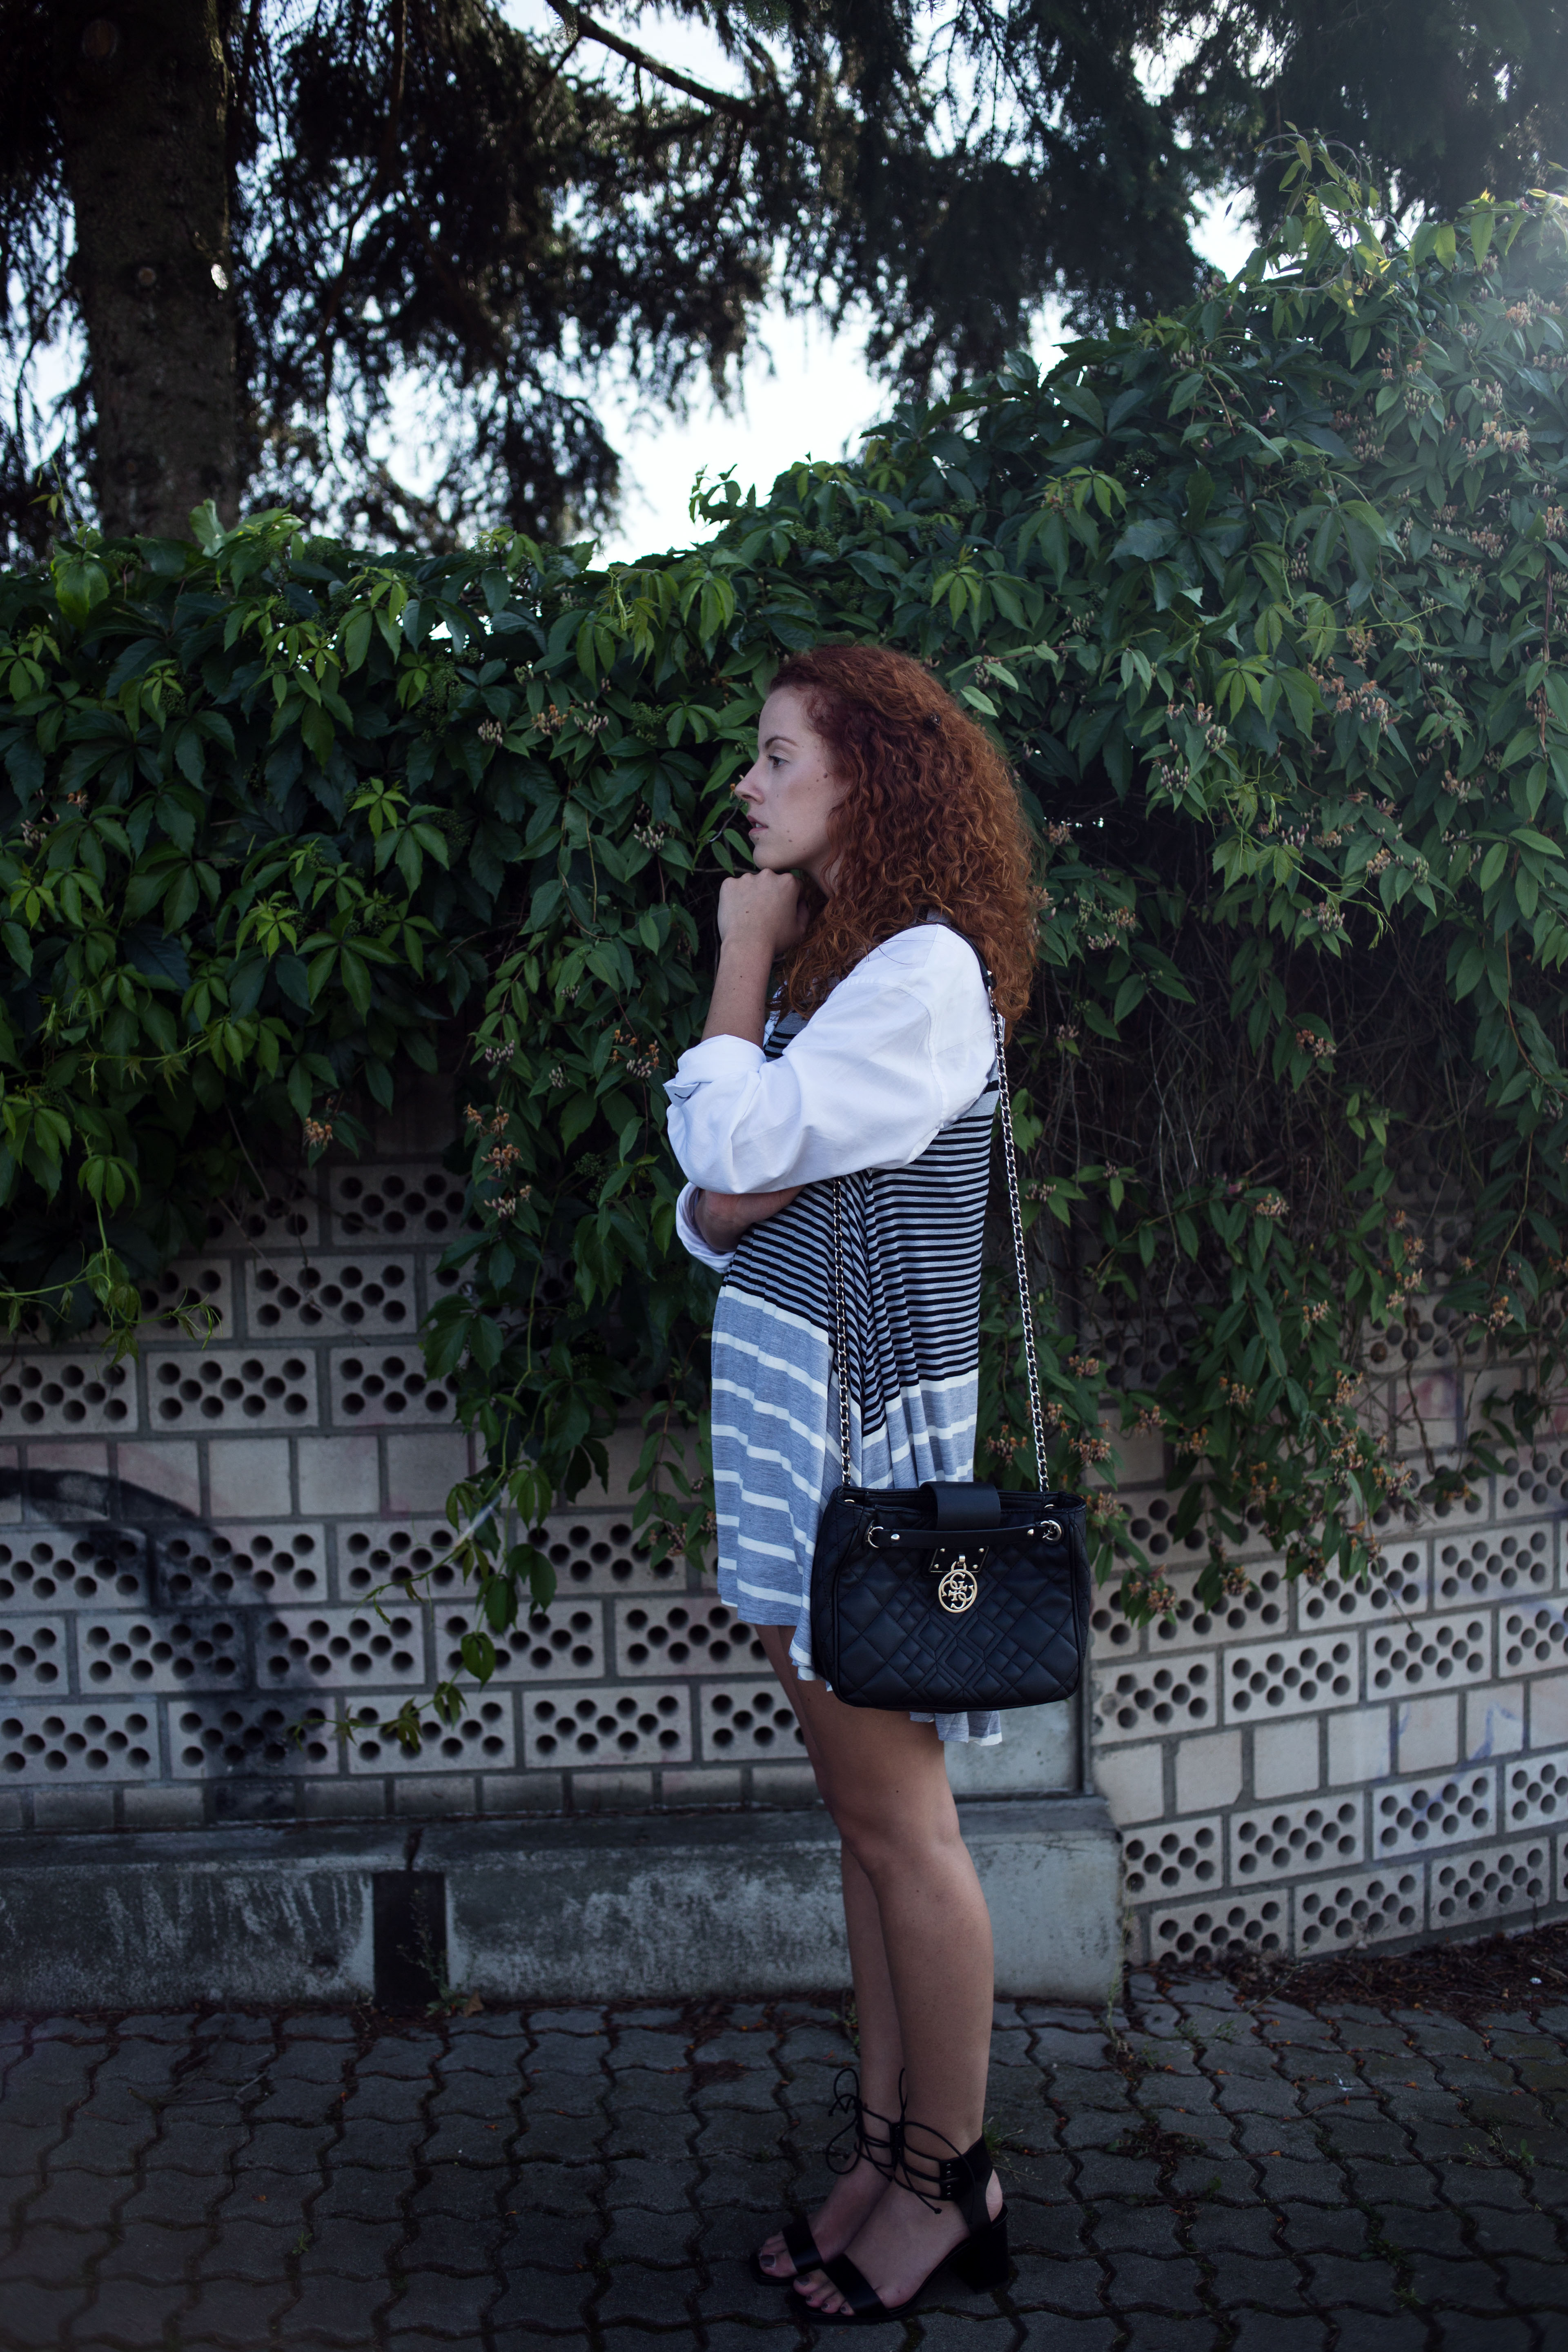 outfit american eagle outfitters striped blouse combination how to style summer dress asos sandalen sandals guess bag ffm frankfurt fashioh blogger modeblog